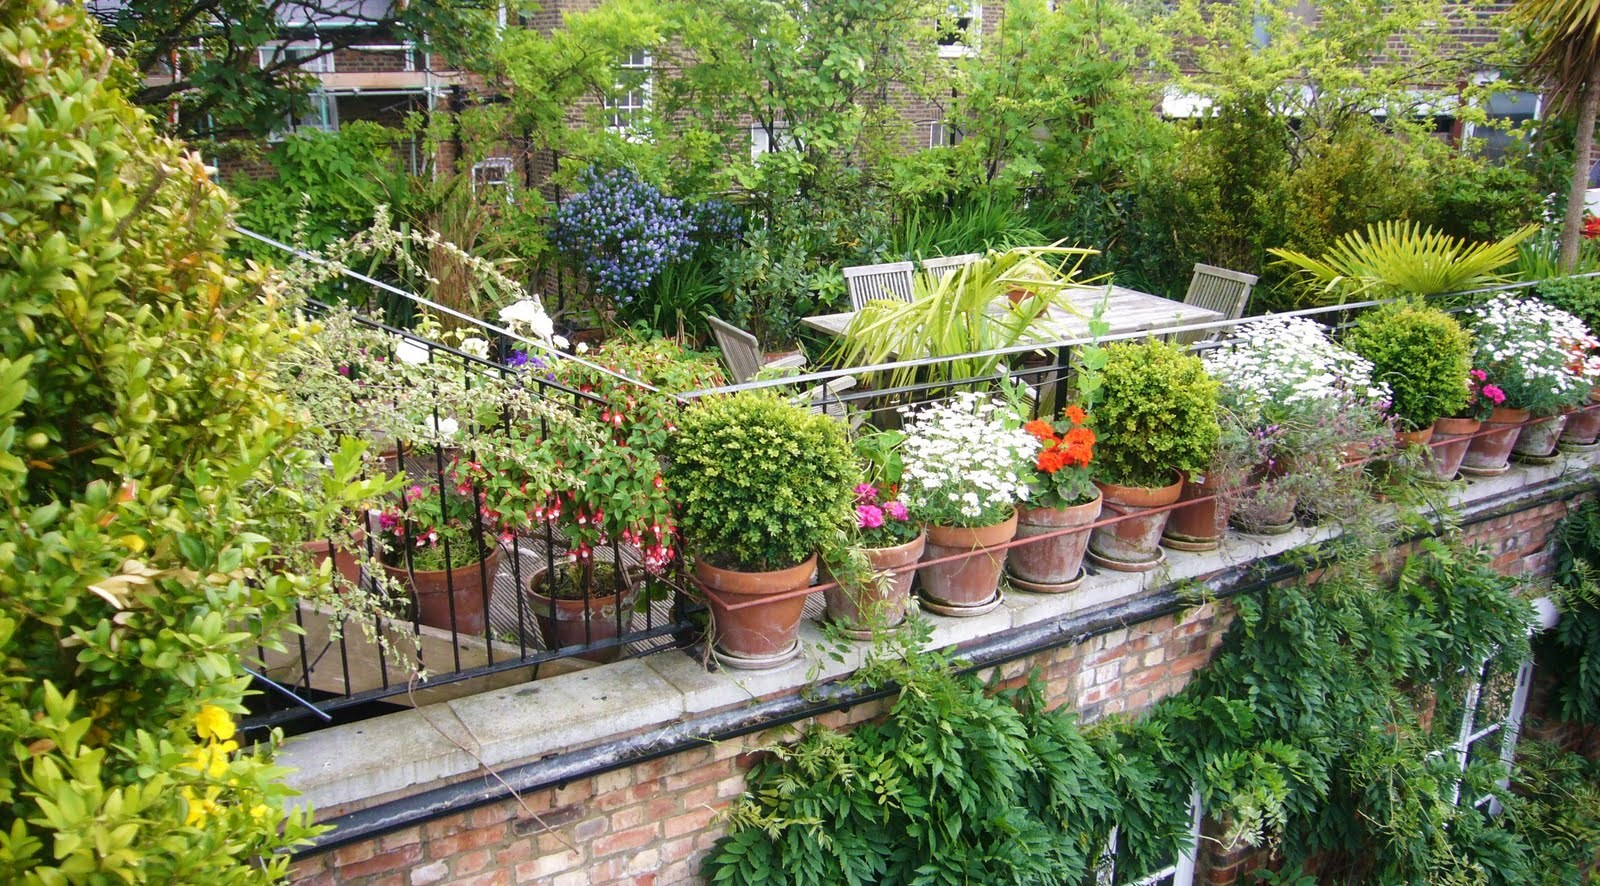 Fabulous space saving designs for the rooftop garden for Amazing small garden designs